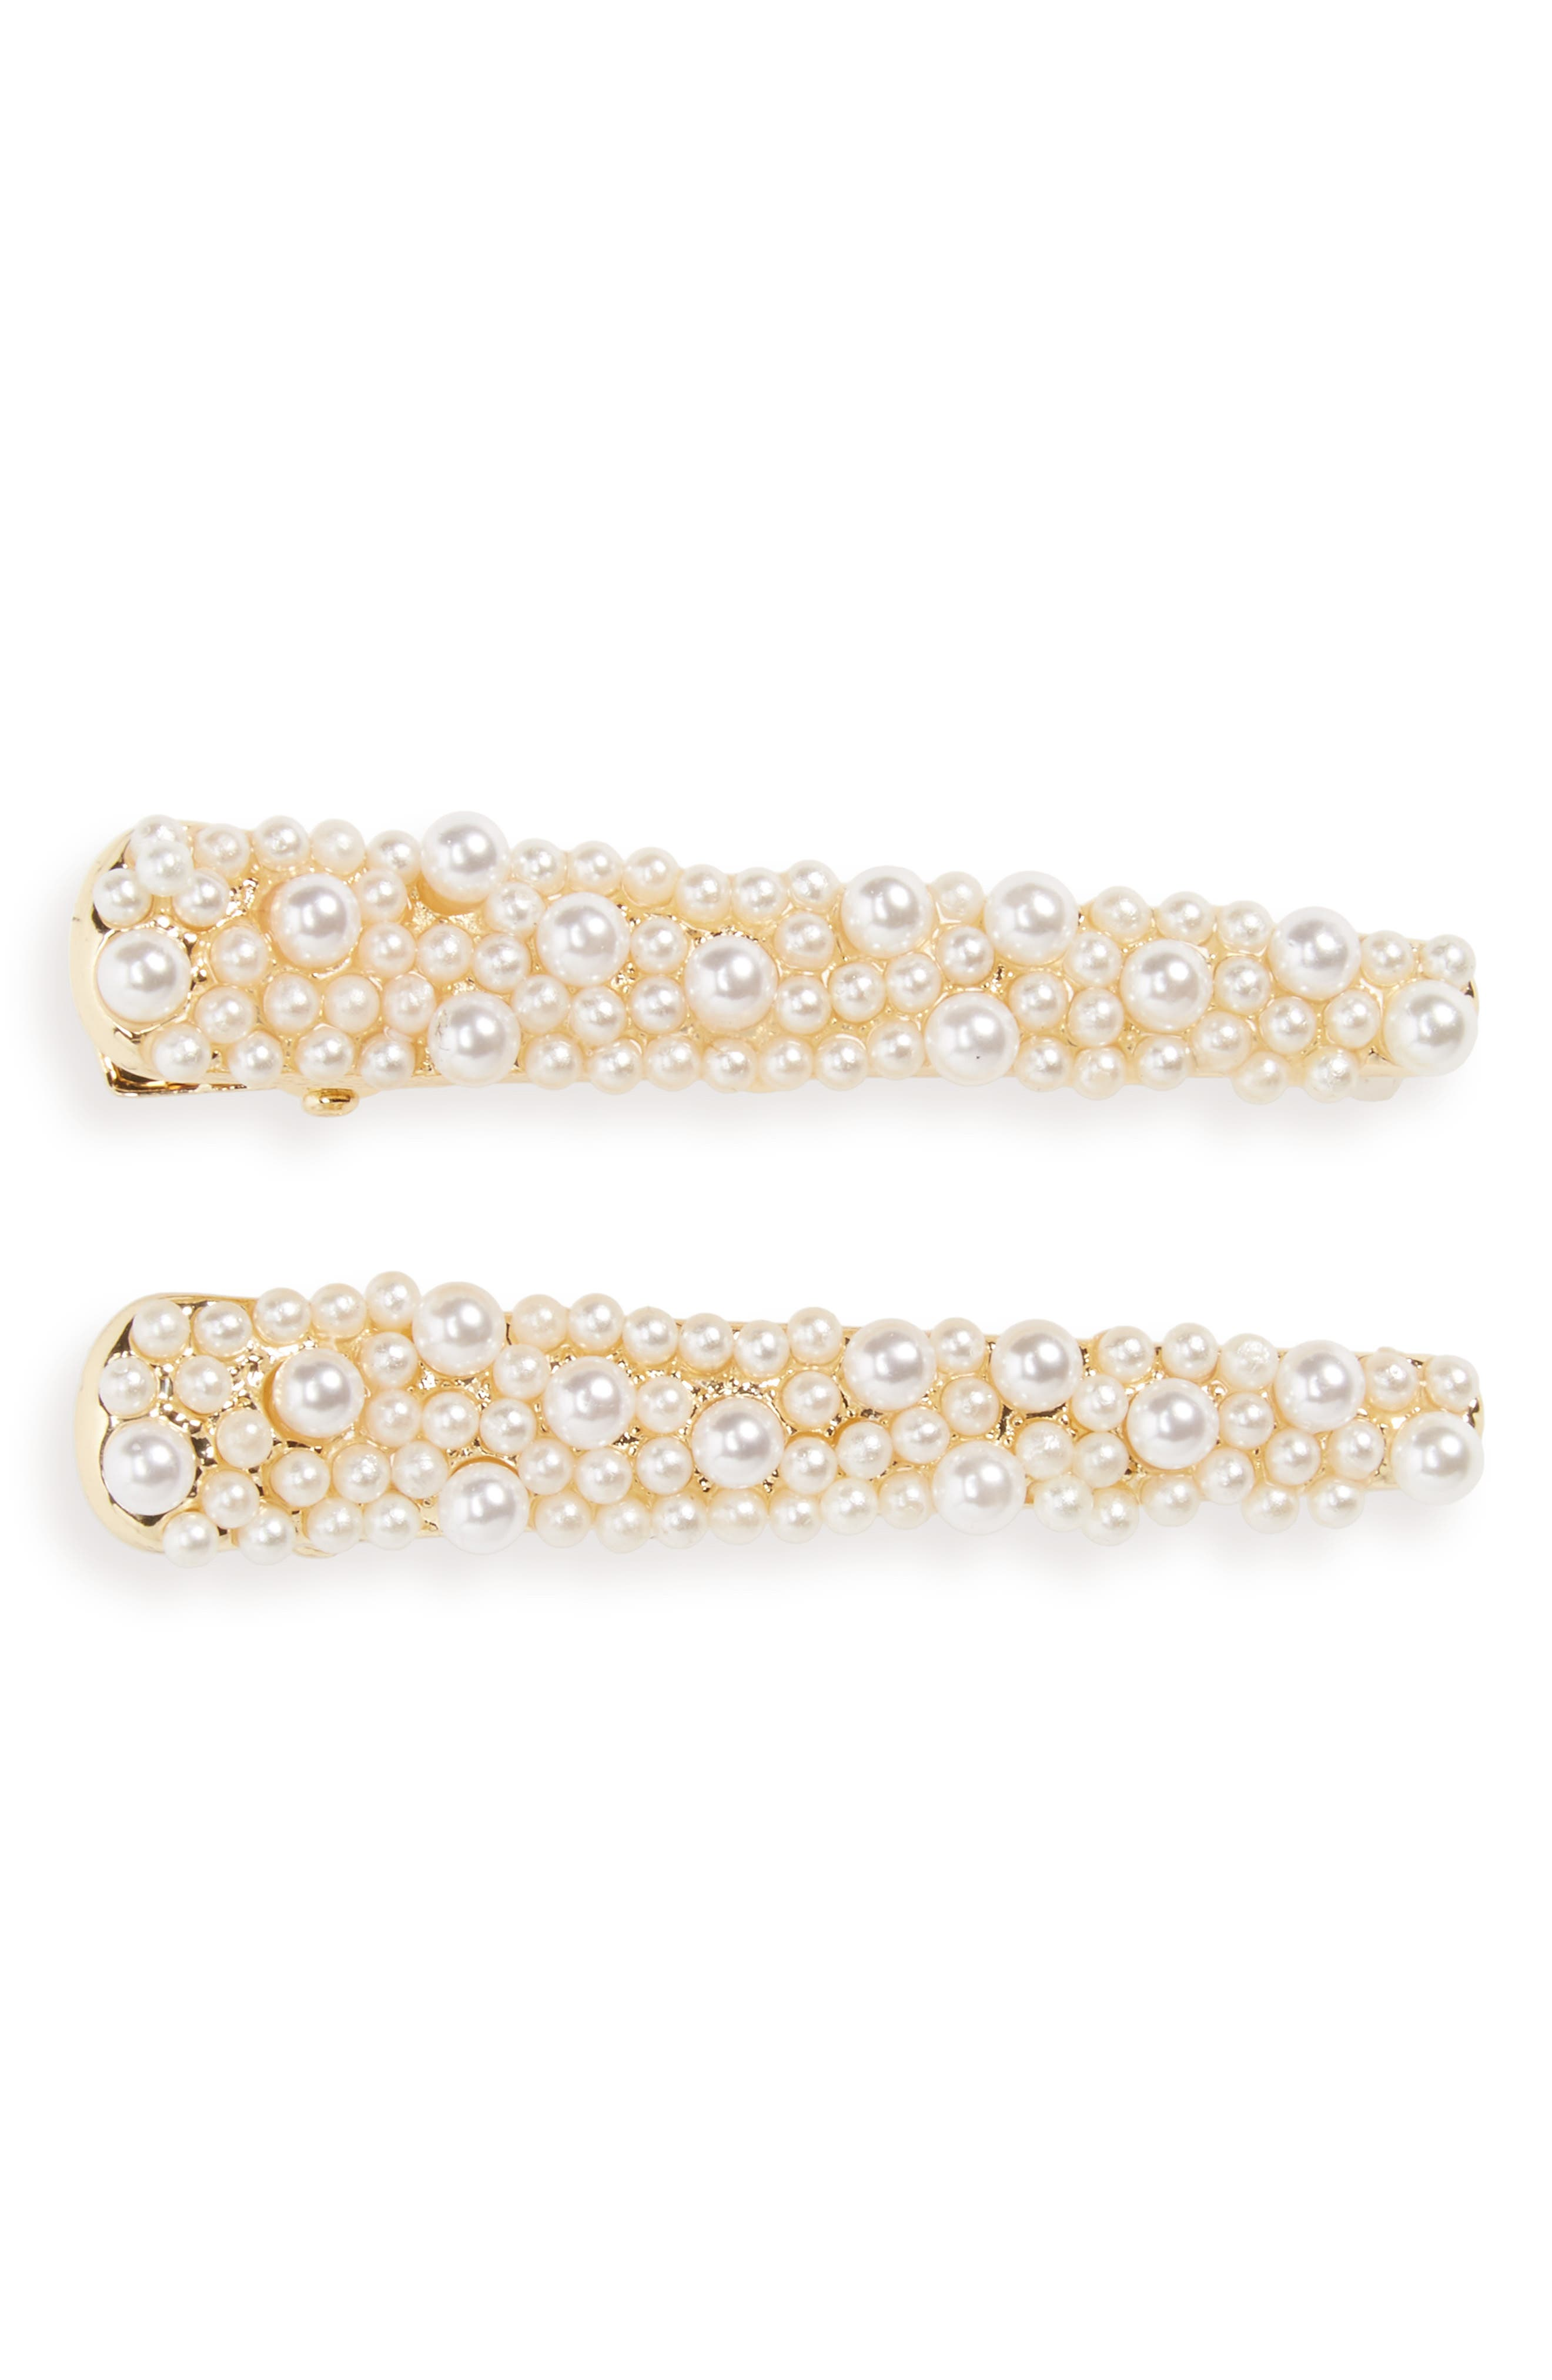 Set of 2 Imitation Pearl Hair Clips,                             Main thumbnail 1, color,                             710